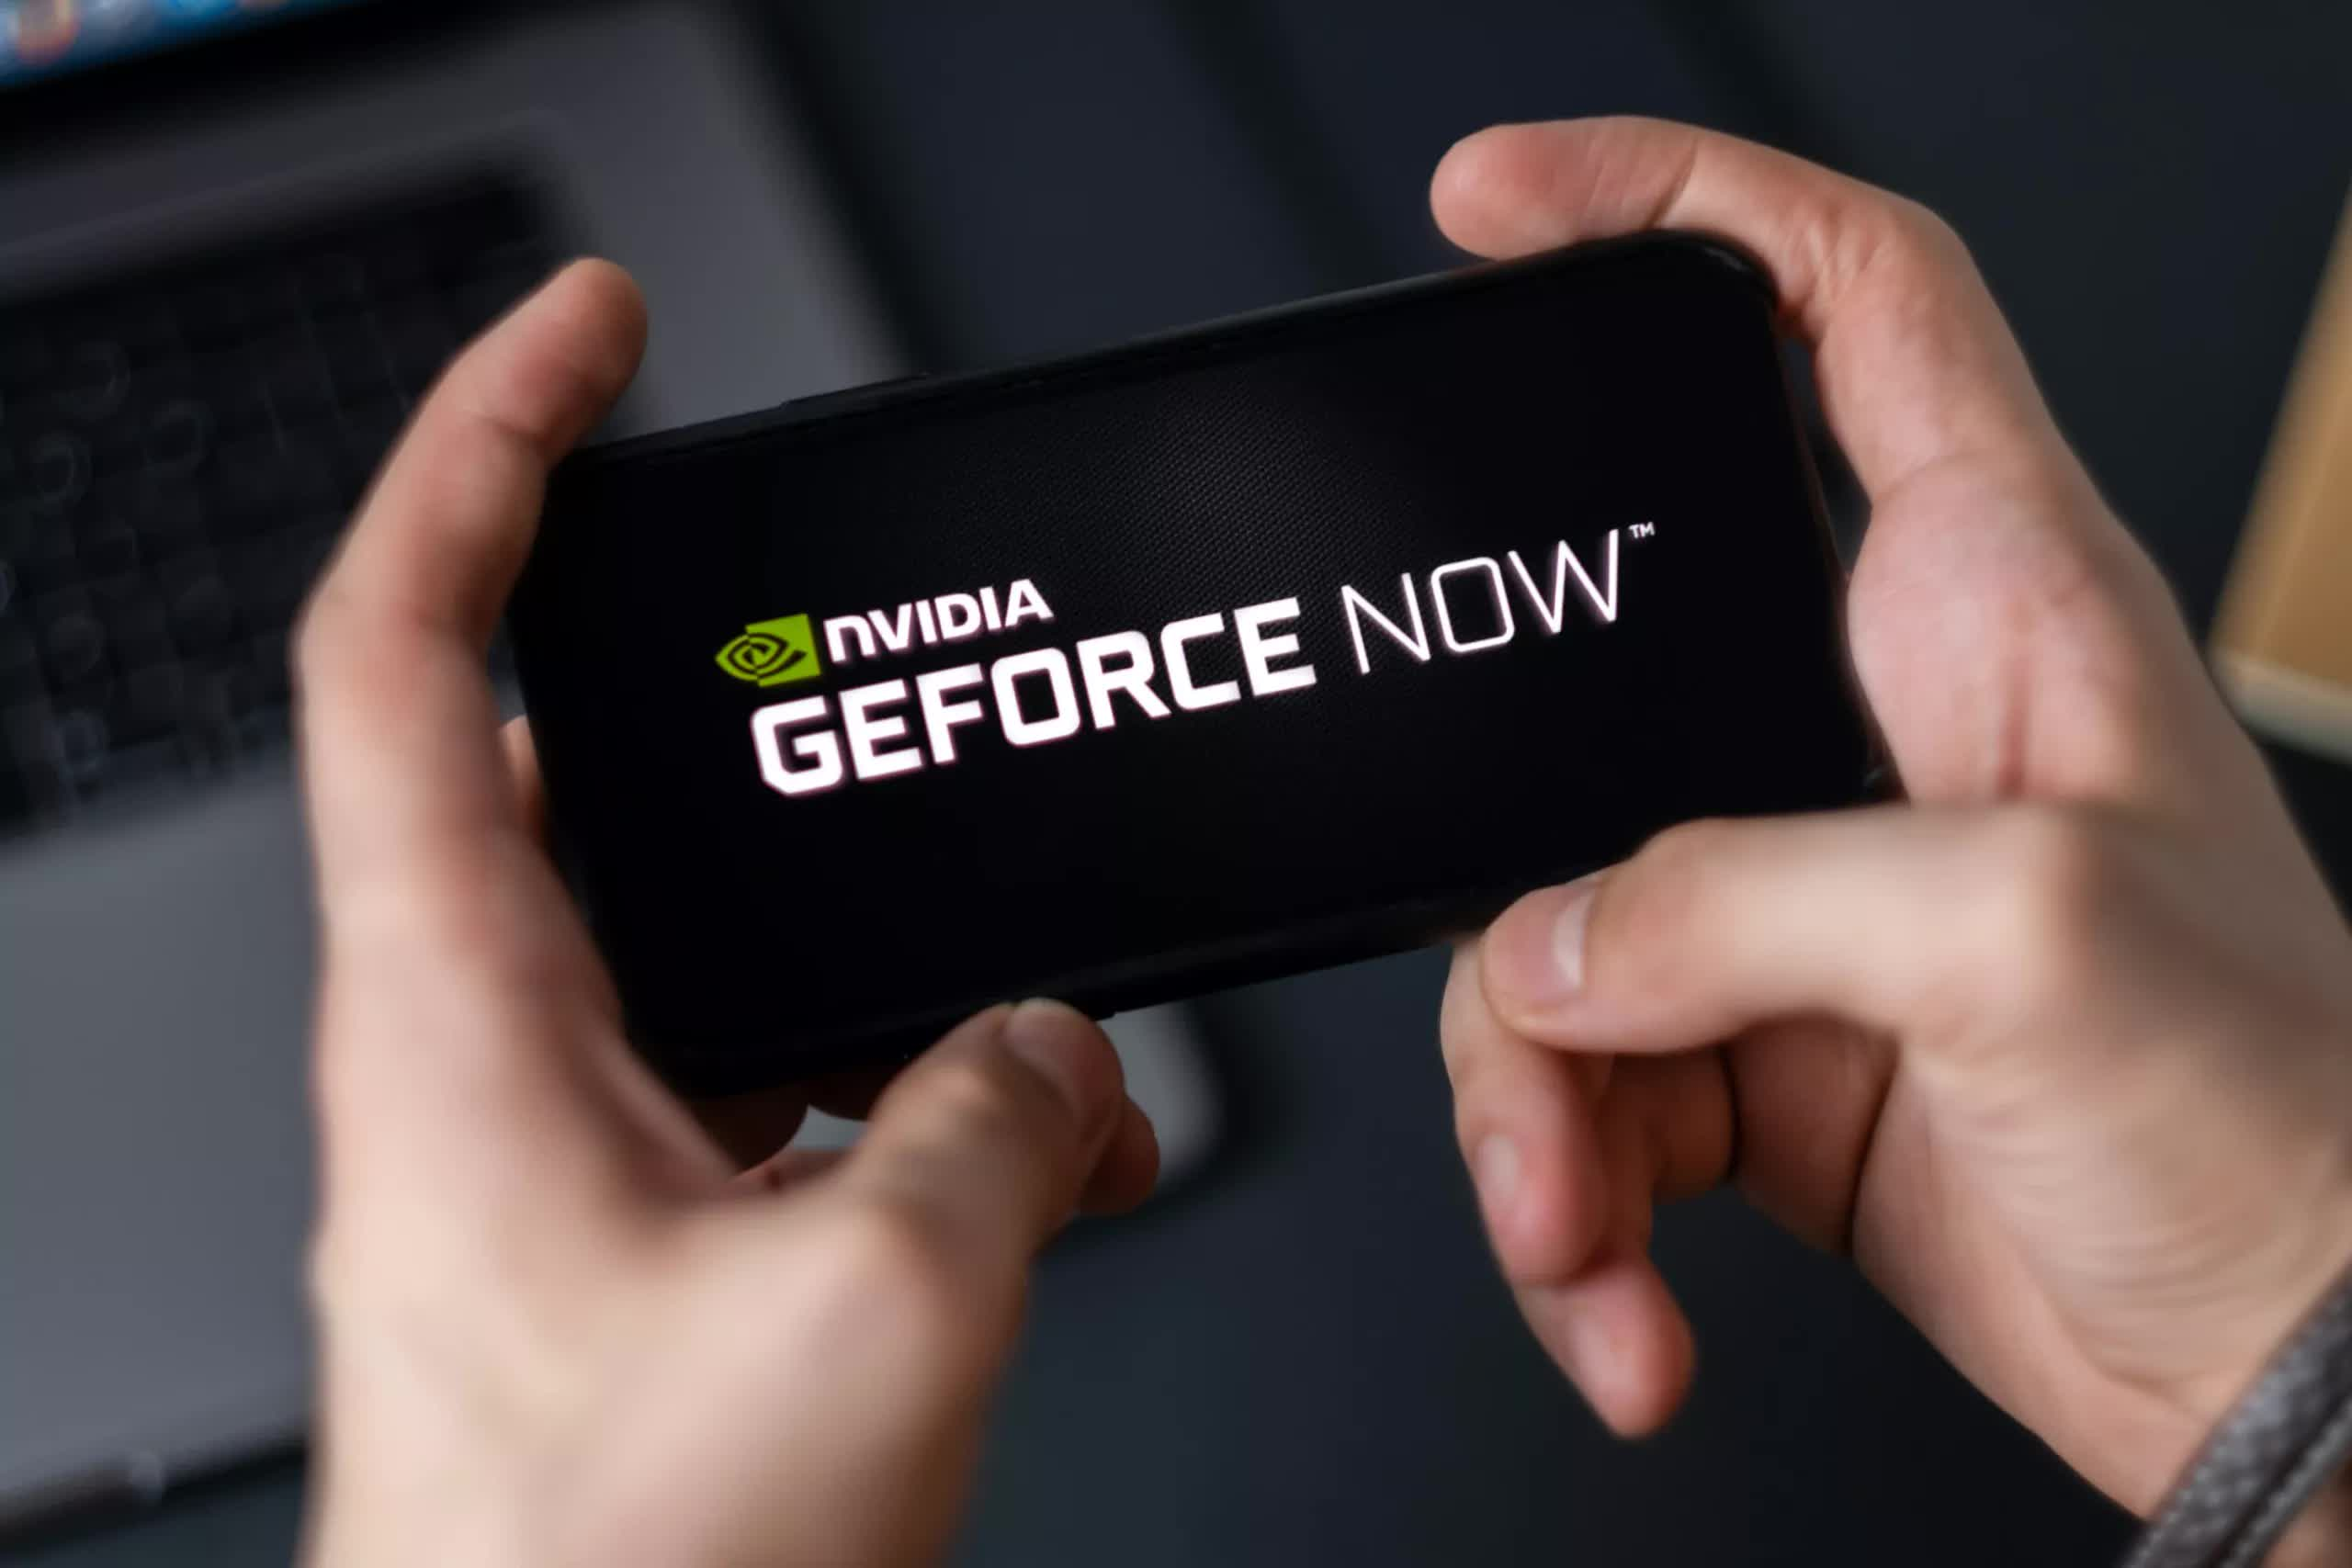 GeForce Now cloud gaming service is now available as a web app for iPhone and iPad